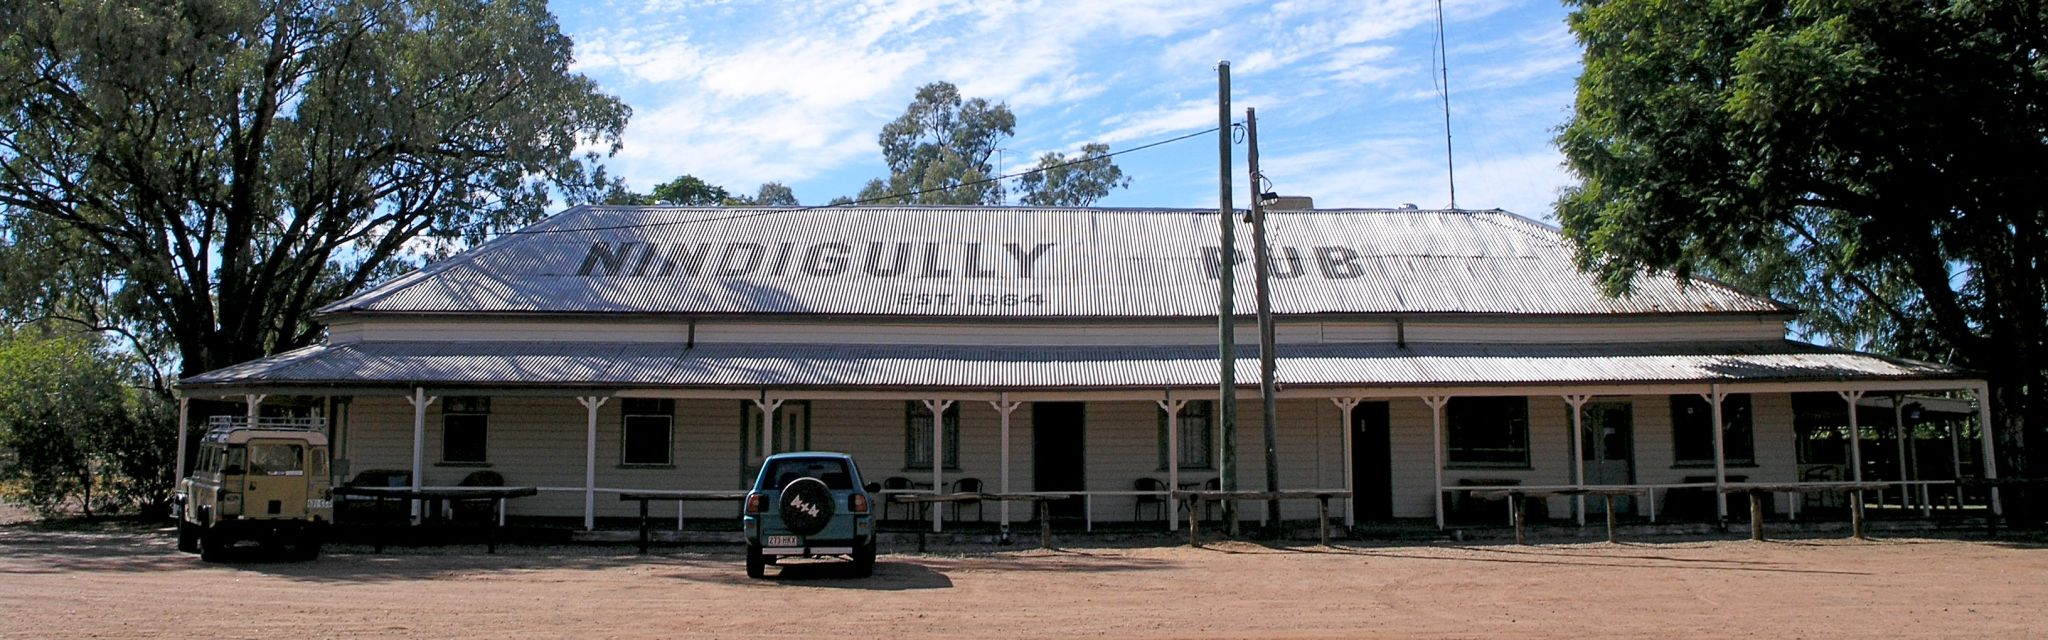 Historic Nindigully Pub, image from a Nature Bound Australia Uniquely Australia tour